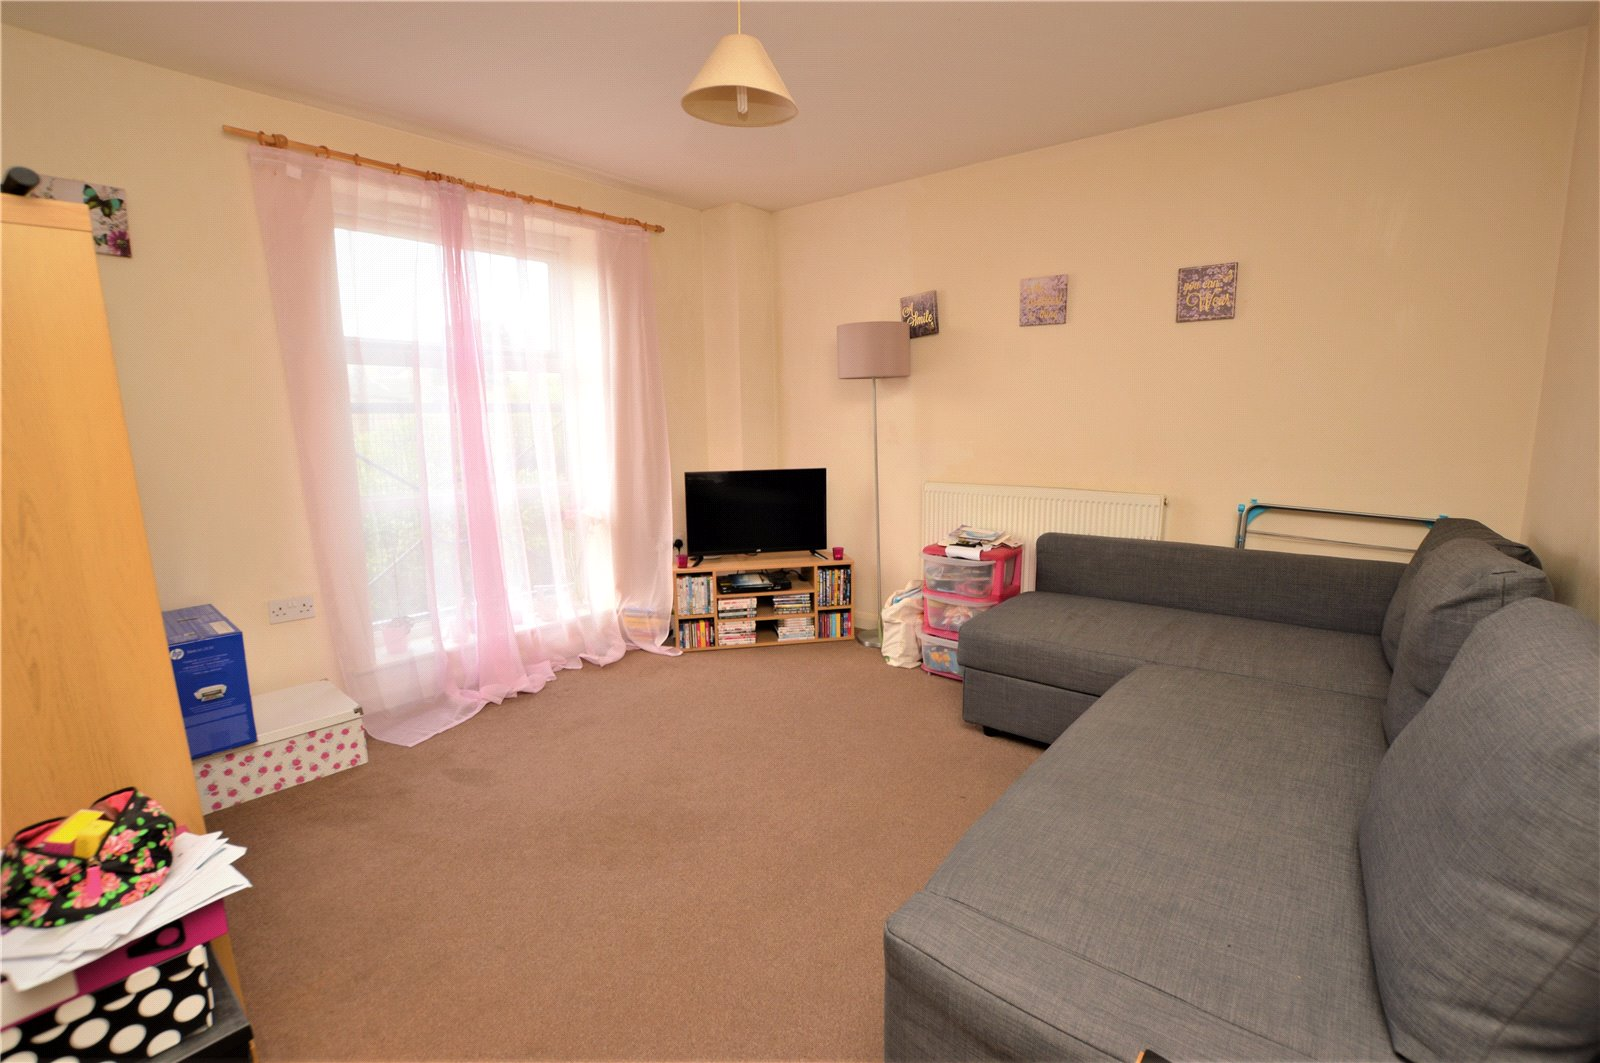 property for sale in Wetherby interior reception room of flat